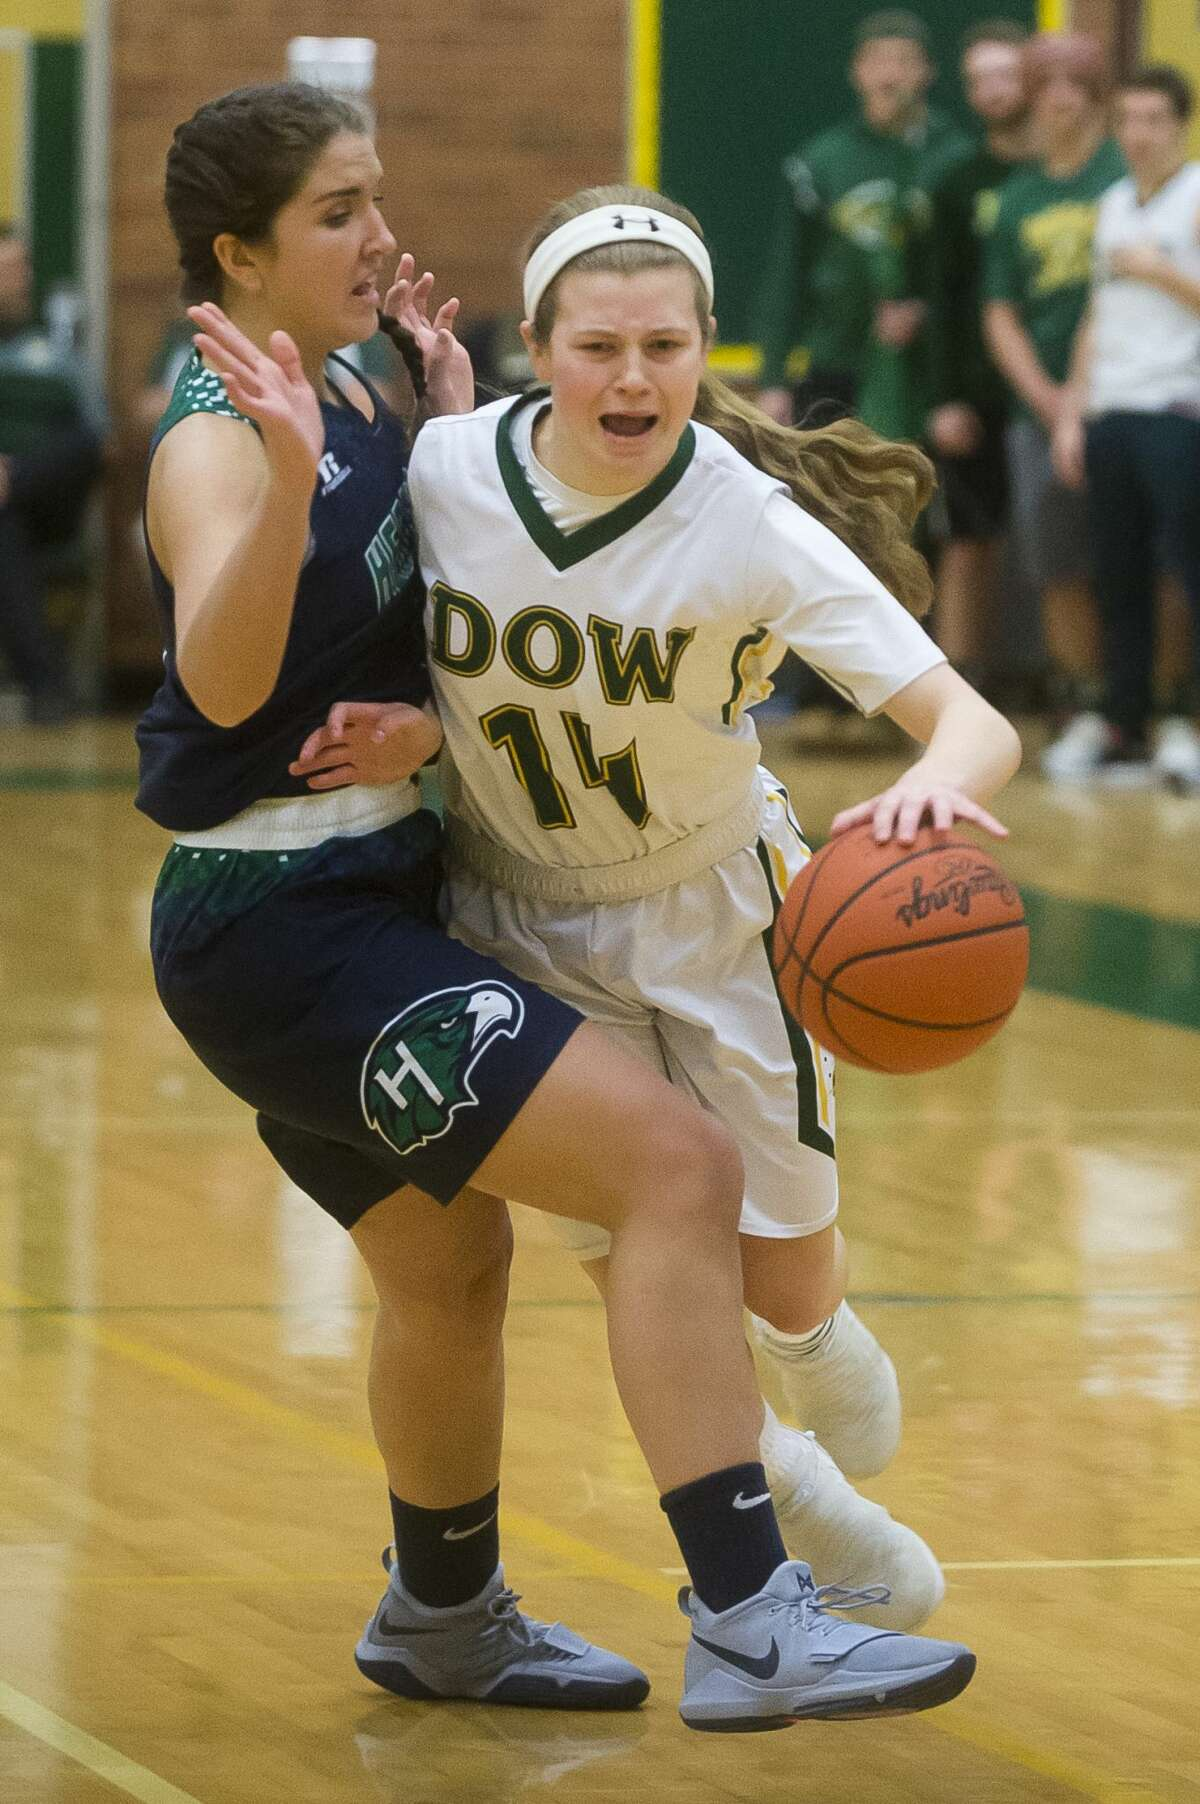 Dow junior Molly Davis dribbles toward the basket during the Chargers' game against Saginaw Heritage on Tuesday, Jan. 16, 2018 at H. H. Dow High School. (Katy Kildee/kkildee@mdn.net)